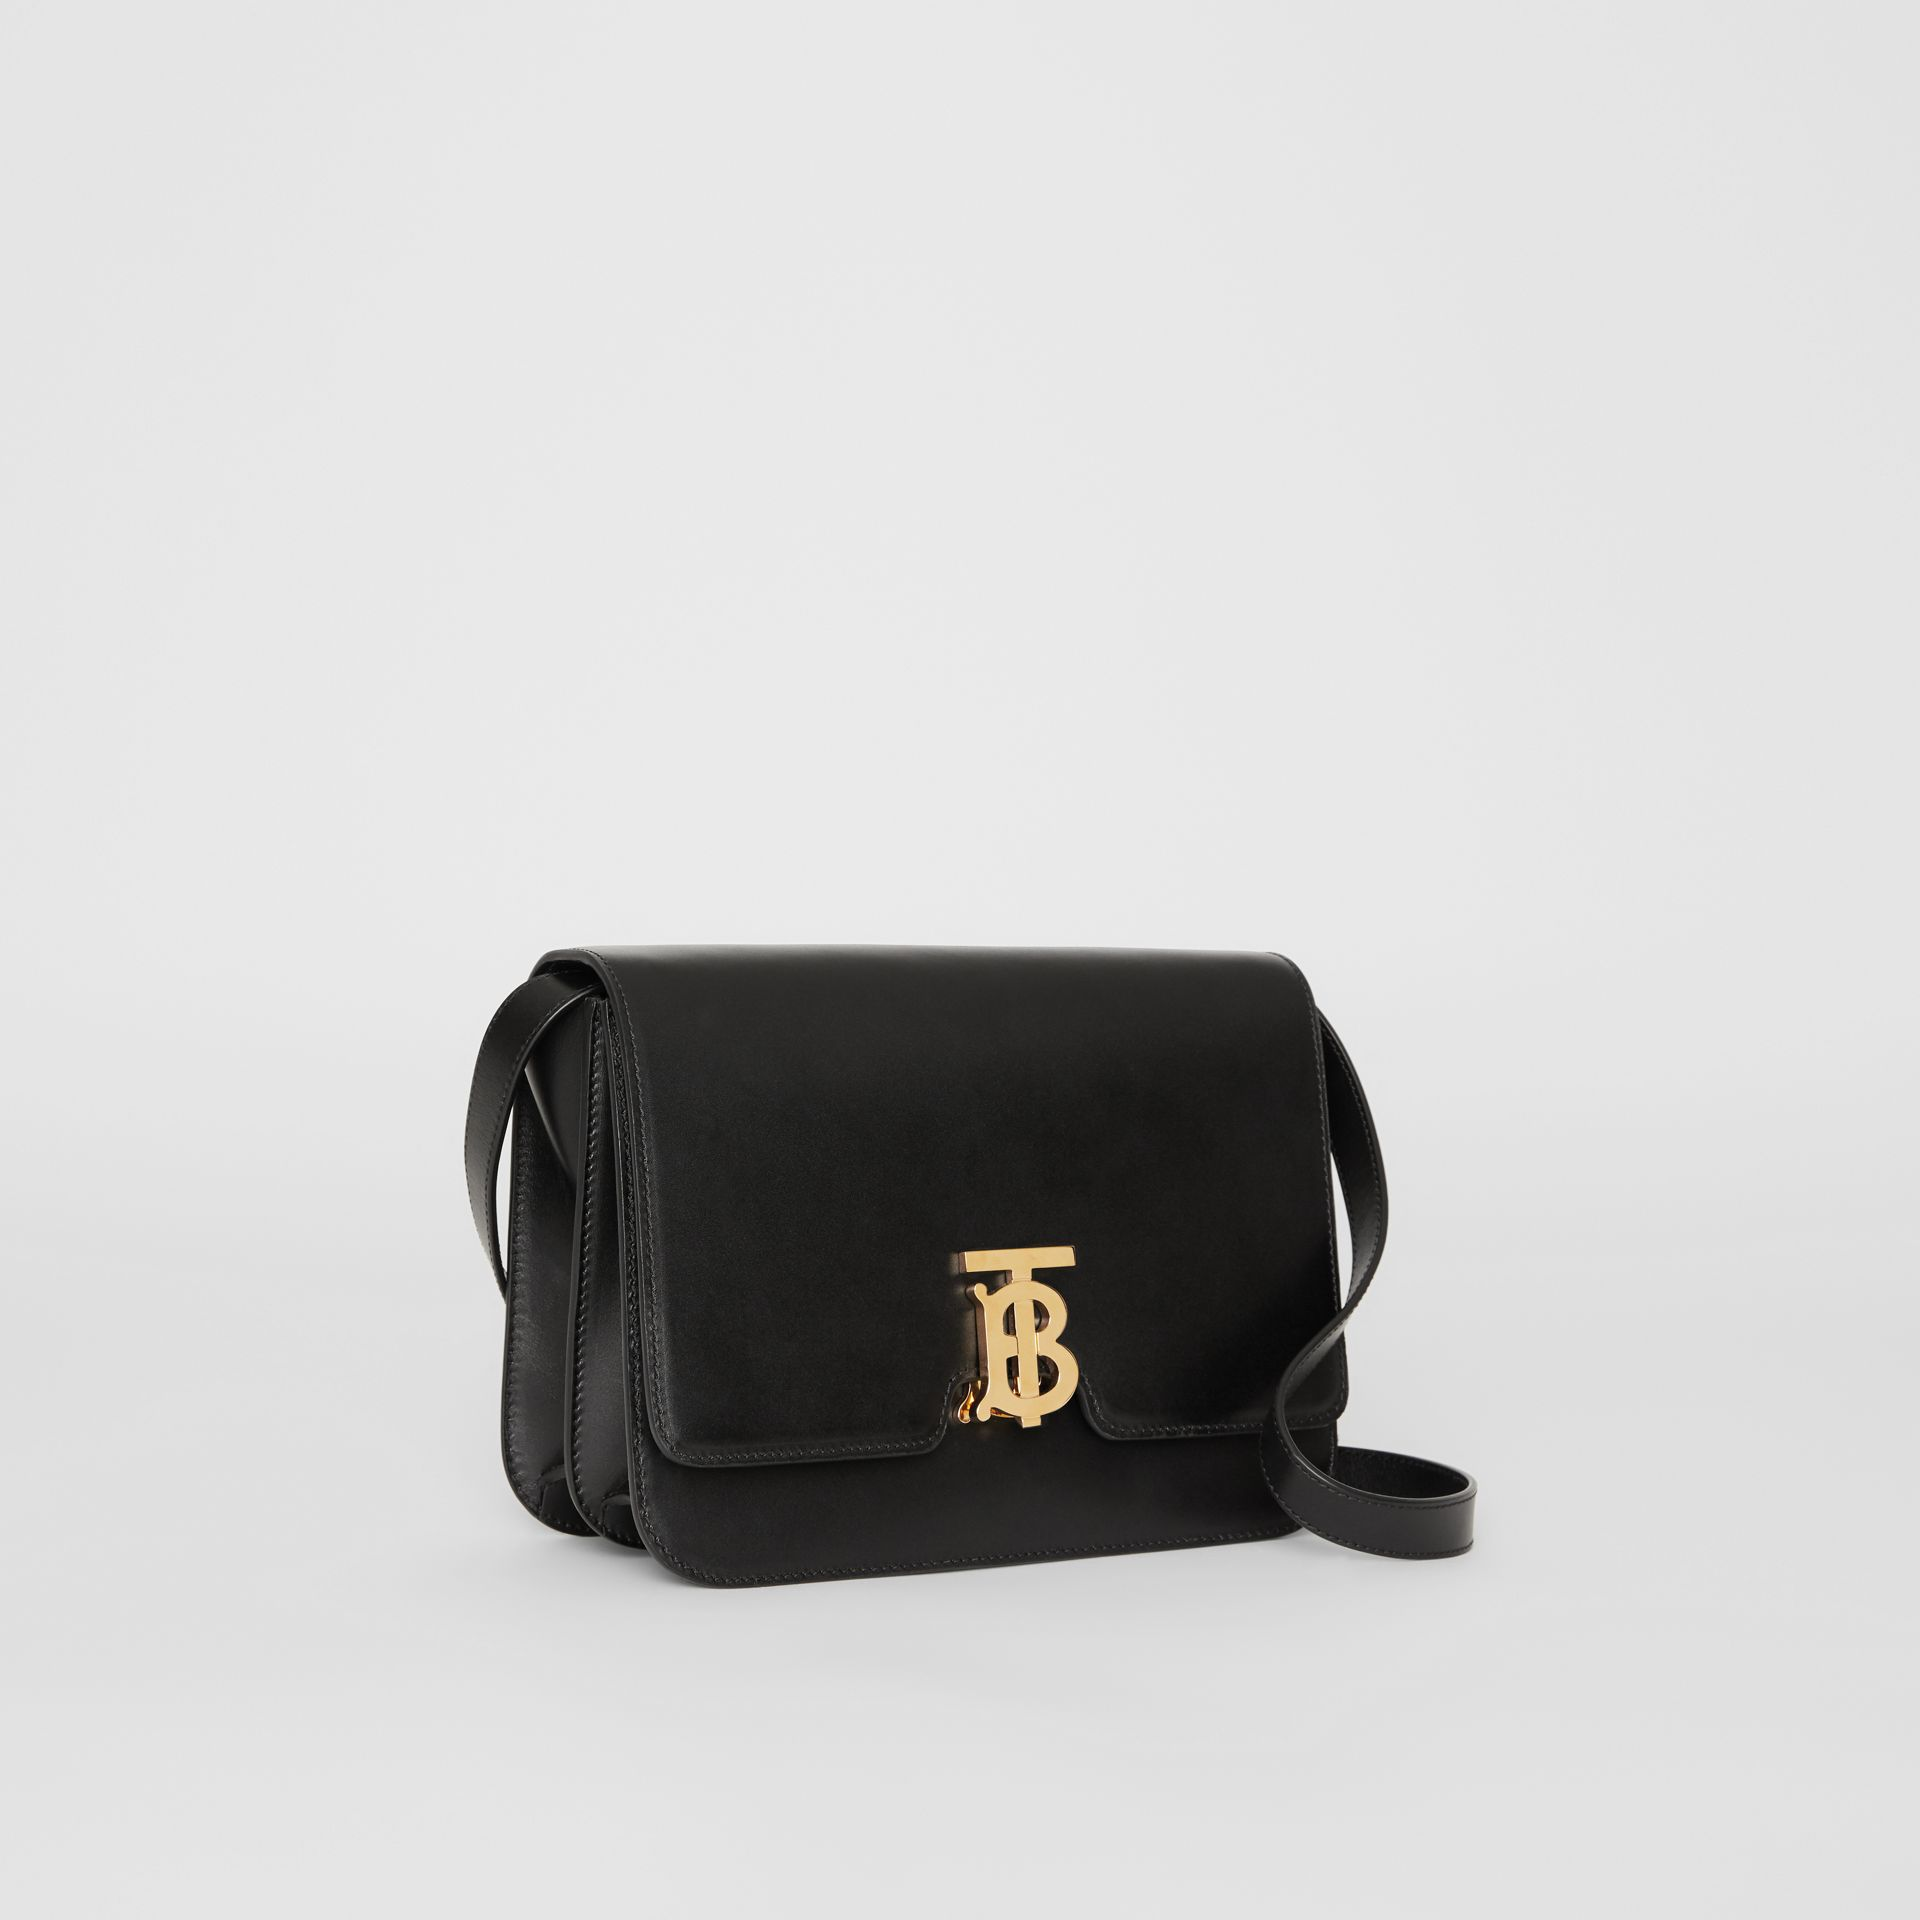 Medium Leather TB Bag in Black - Women | Burberry Australia - gallery image 6